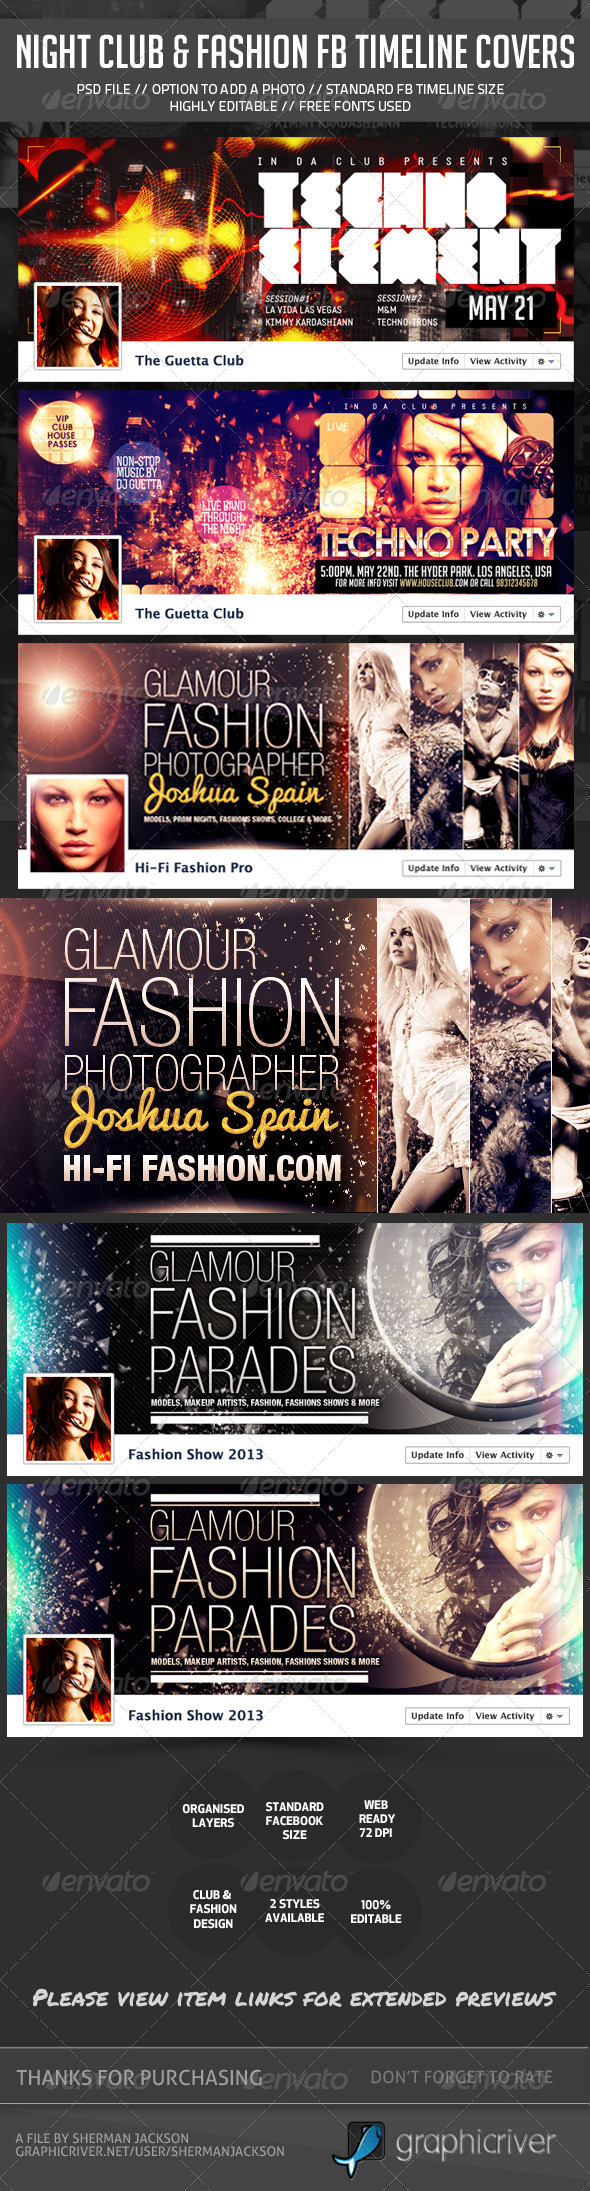 Night Club, Fashion, Glamour Fb Timeline Covers Bundle - Facebook Timeline Covers Social Media